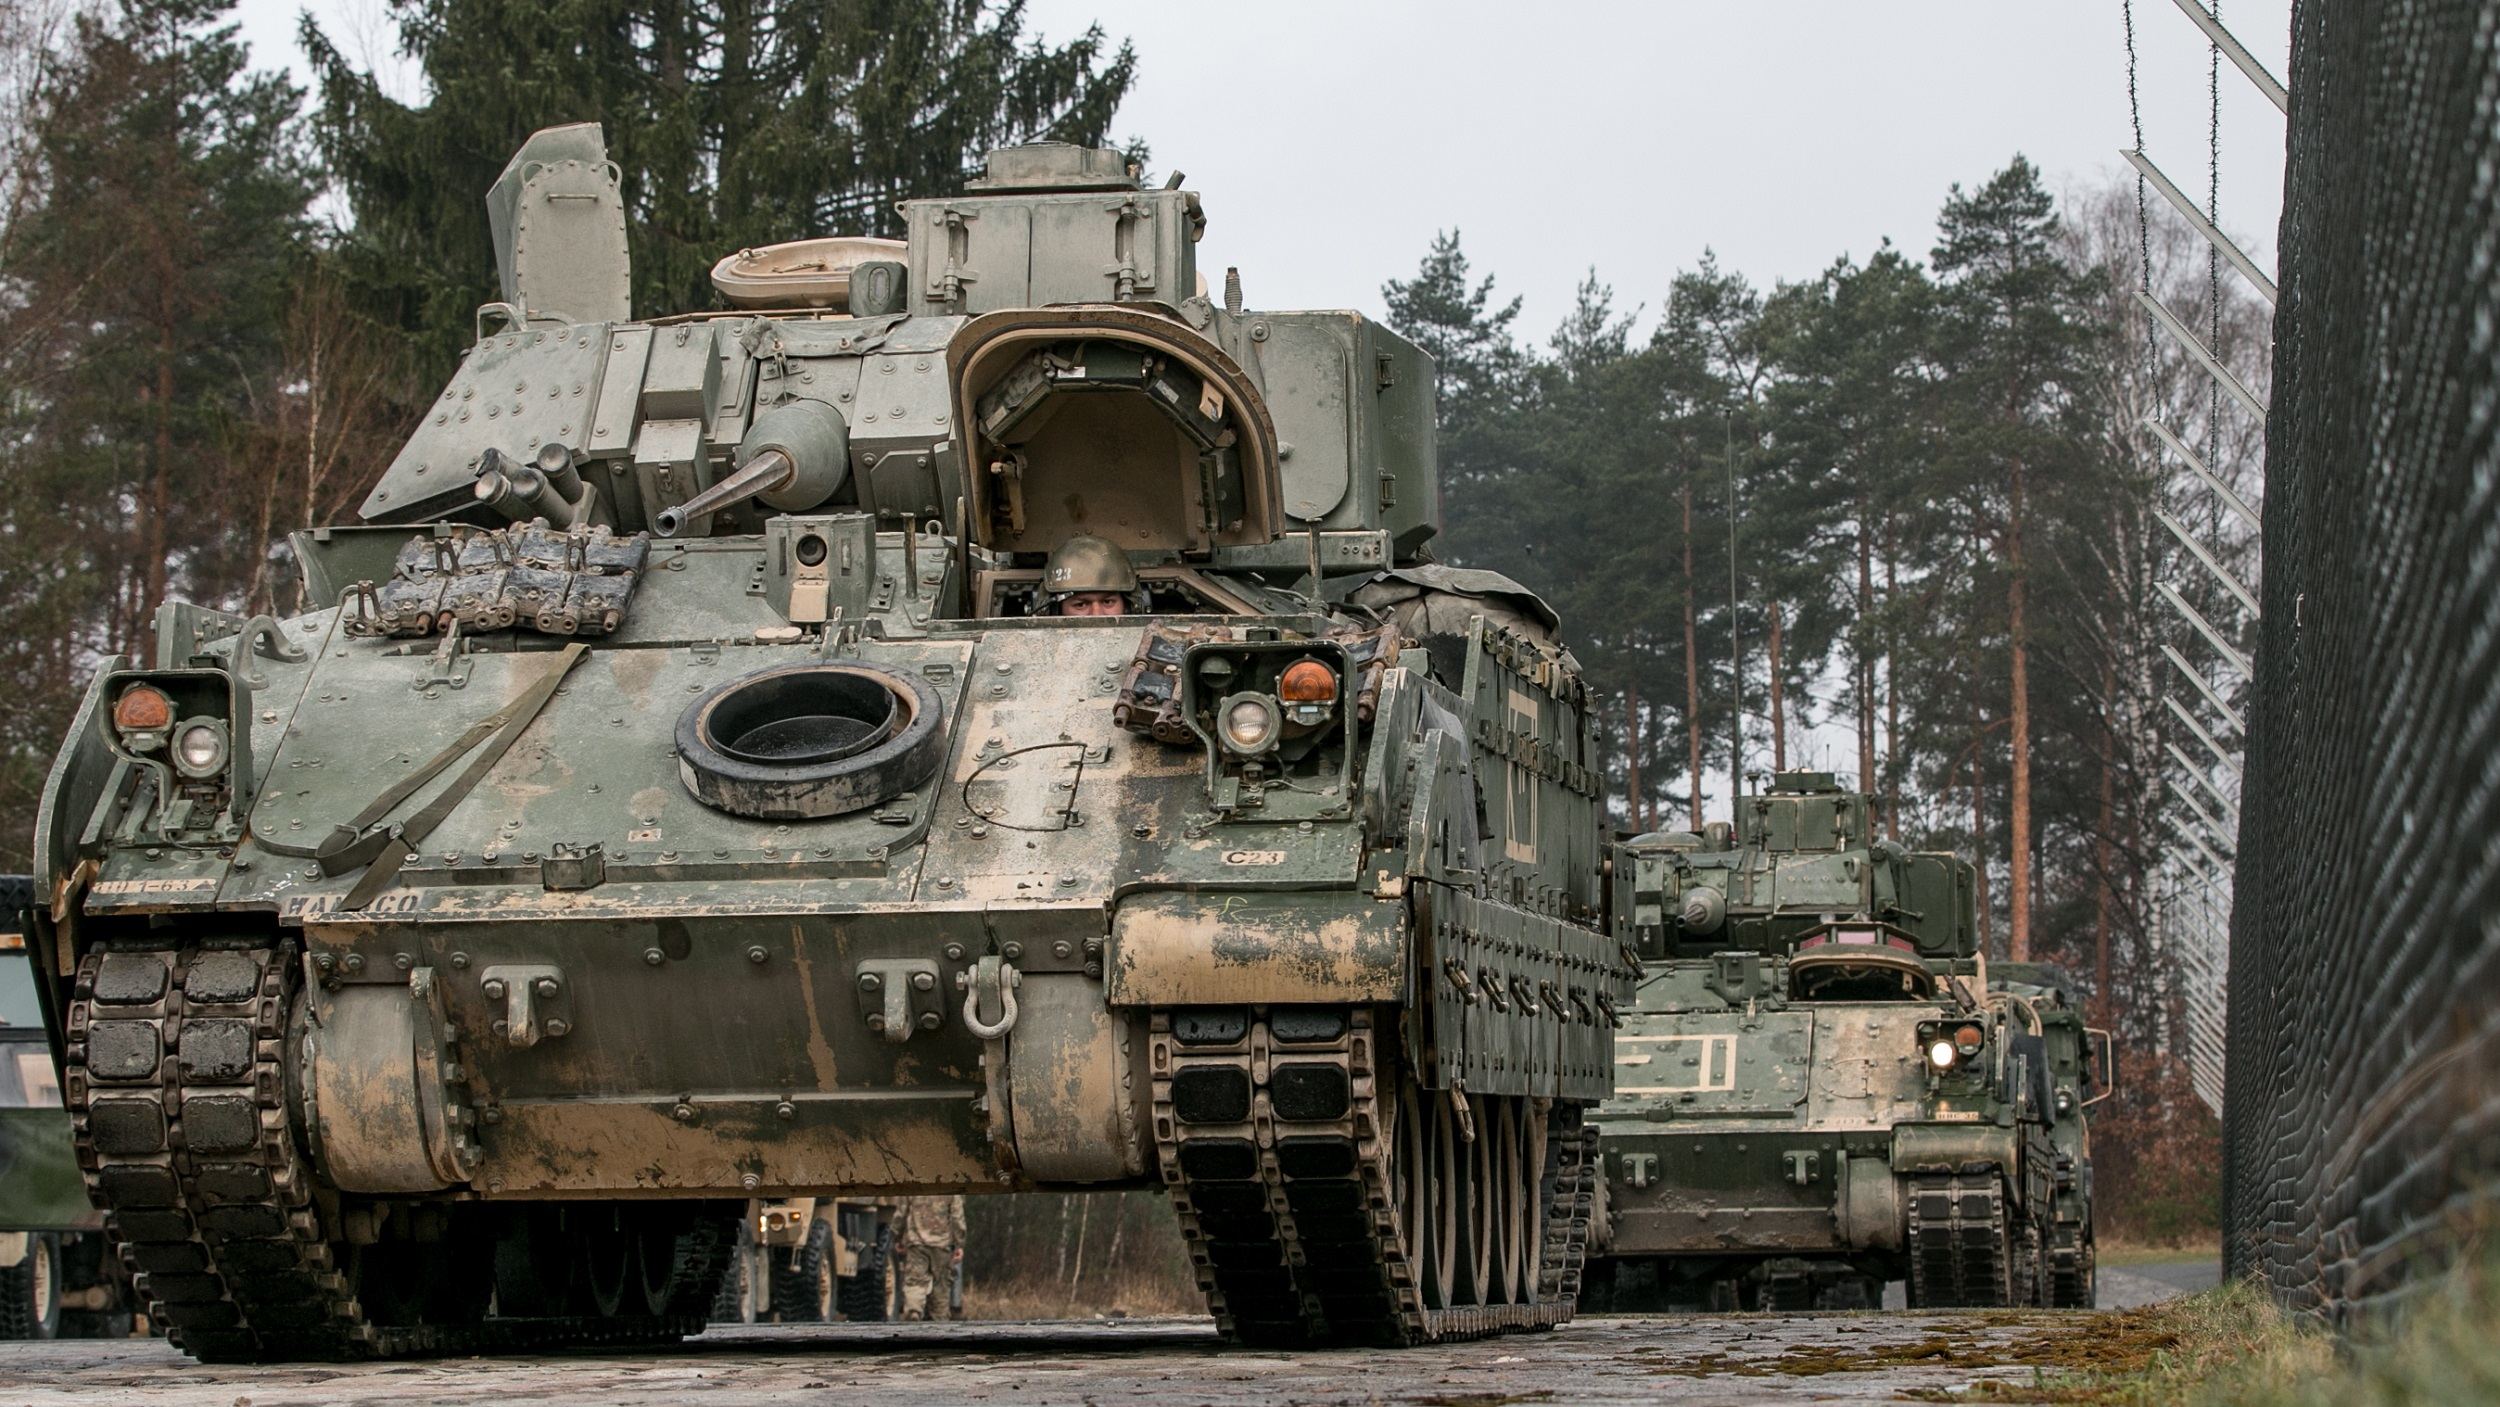 M2 Bradley fighting vehicles are lined up in Grafenwoehr, Germany to be fitted with Multiple Integrated Laser Engagement System (MILES) gear on April 11, 2018, in preparation for a field exercise during Combined Resolve X. Exercise Combined Resolve X is an U.S. Army Europe exercise series held twice a year in the major training areas of southeastern Germany, with this iteration scheduled to take place in April 2018. The Joint Warfighting Assessment leveraged Combined Resolve X, along with the Air Force's Blue Flag, that were also occurring in Europe. (U.S. Army photo by Spc. Dustin D. Biven / 22nd Mobile Public Affairs Detachment)